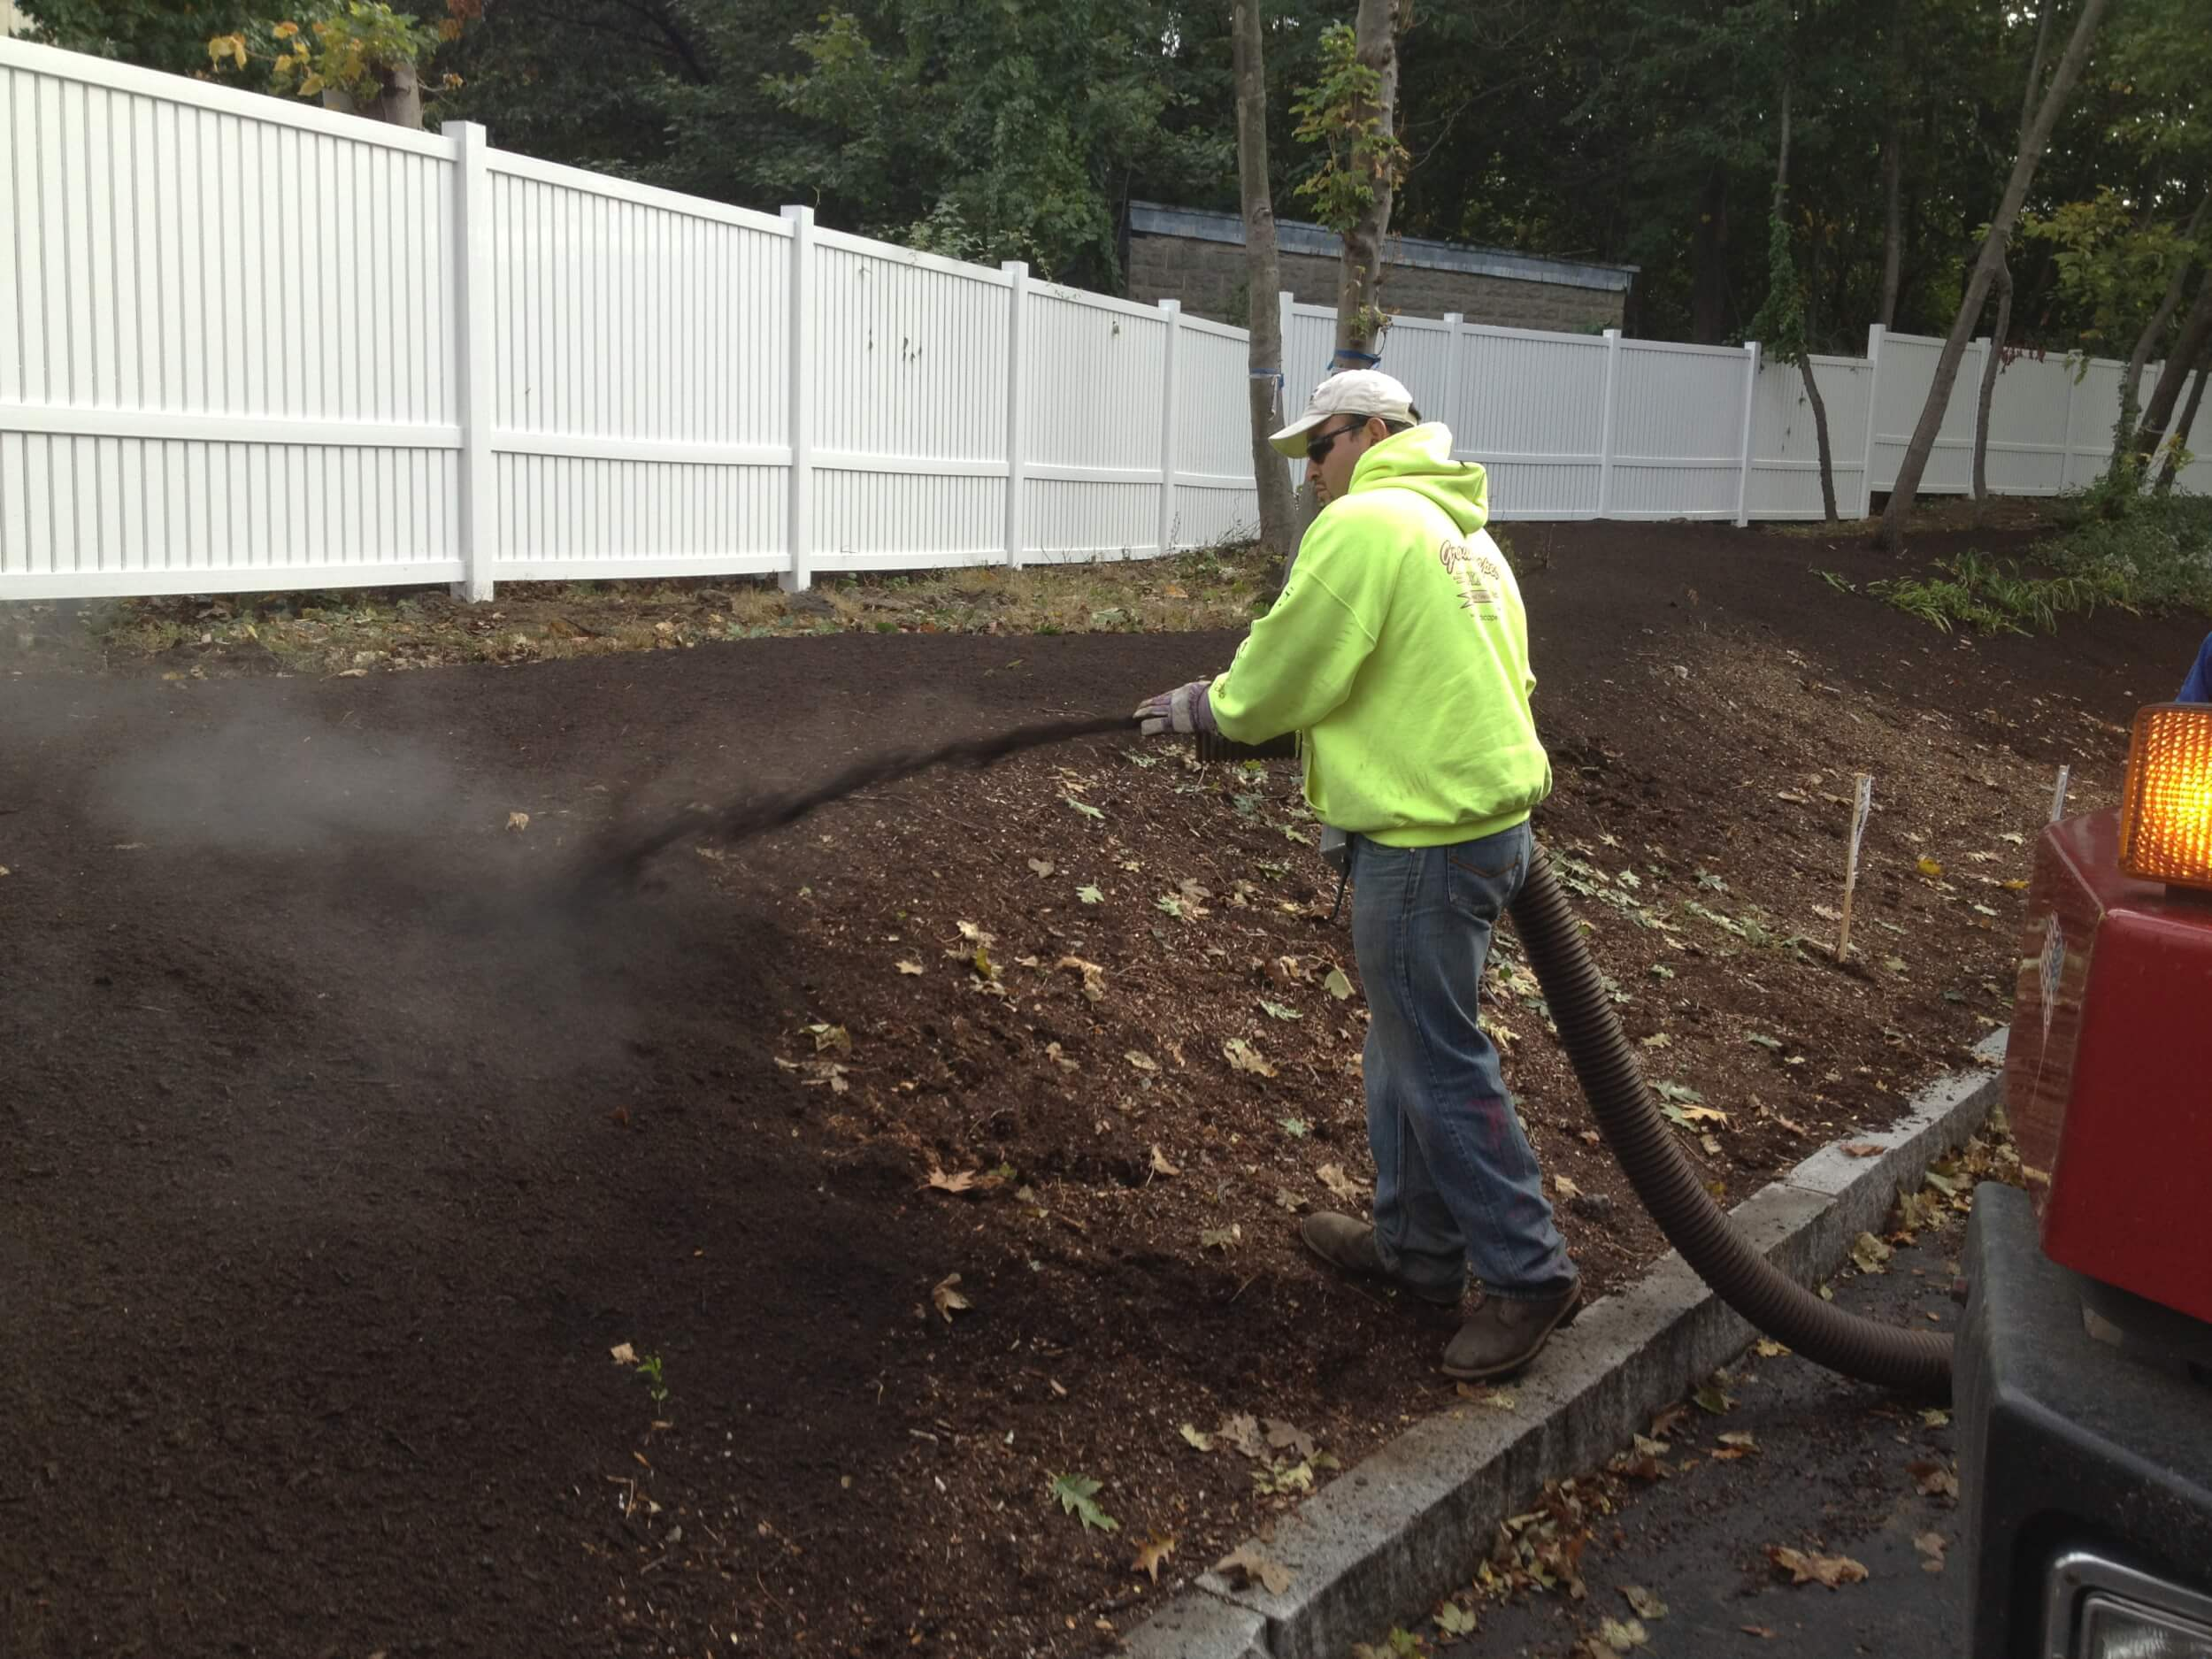 Replenishing depleted soils and stabilizing slopes with compost-mulch in preparation for planting at the JCHE campus in Boston.